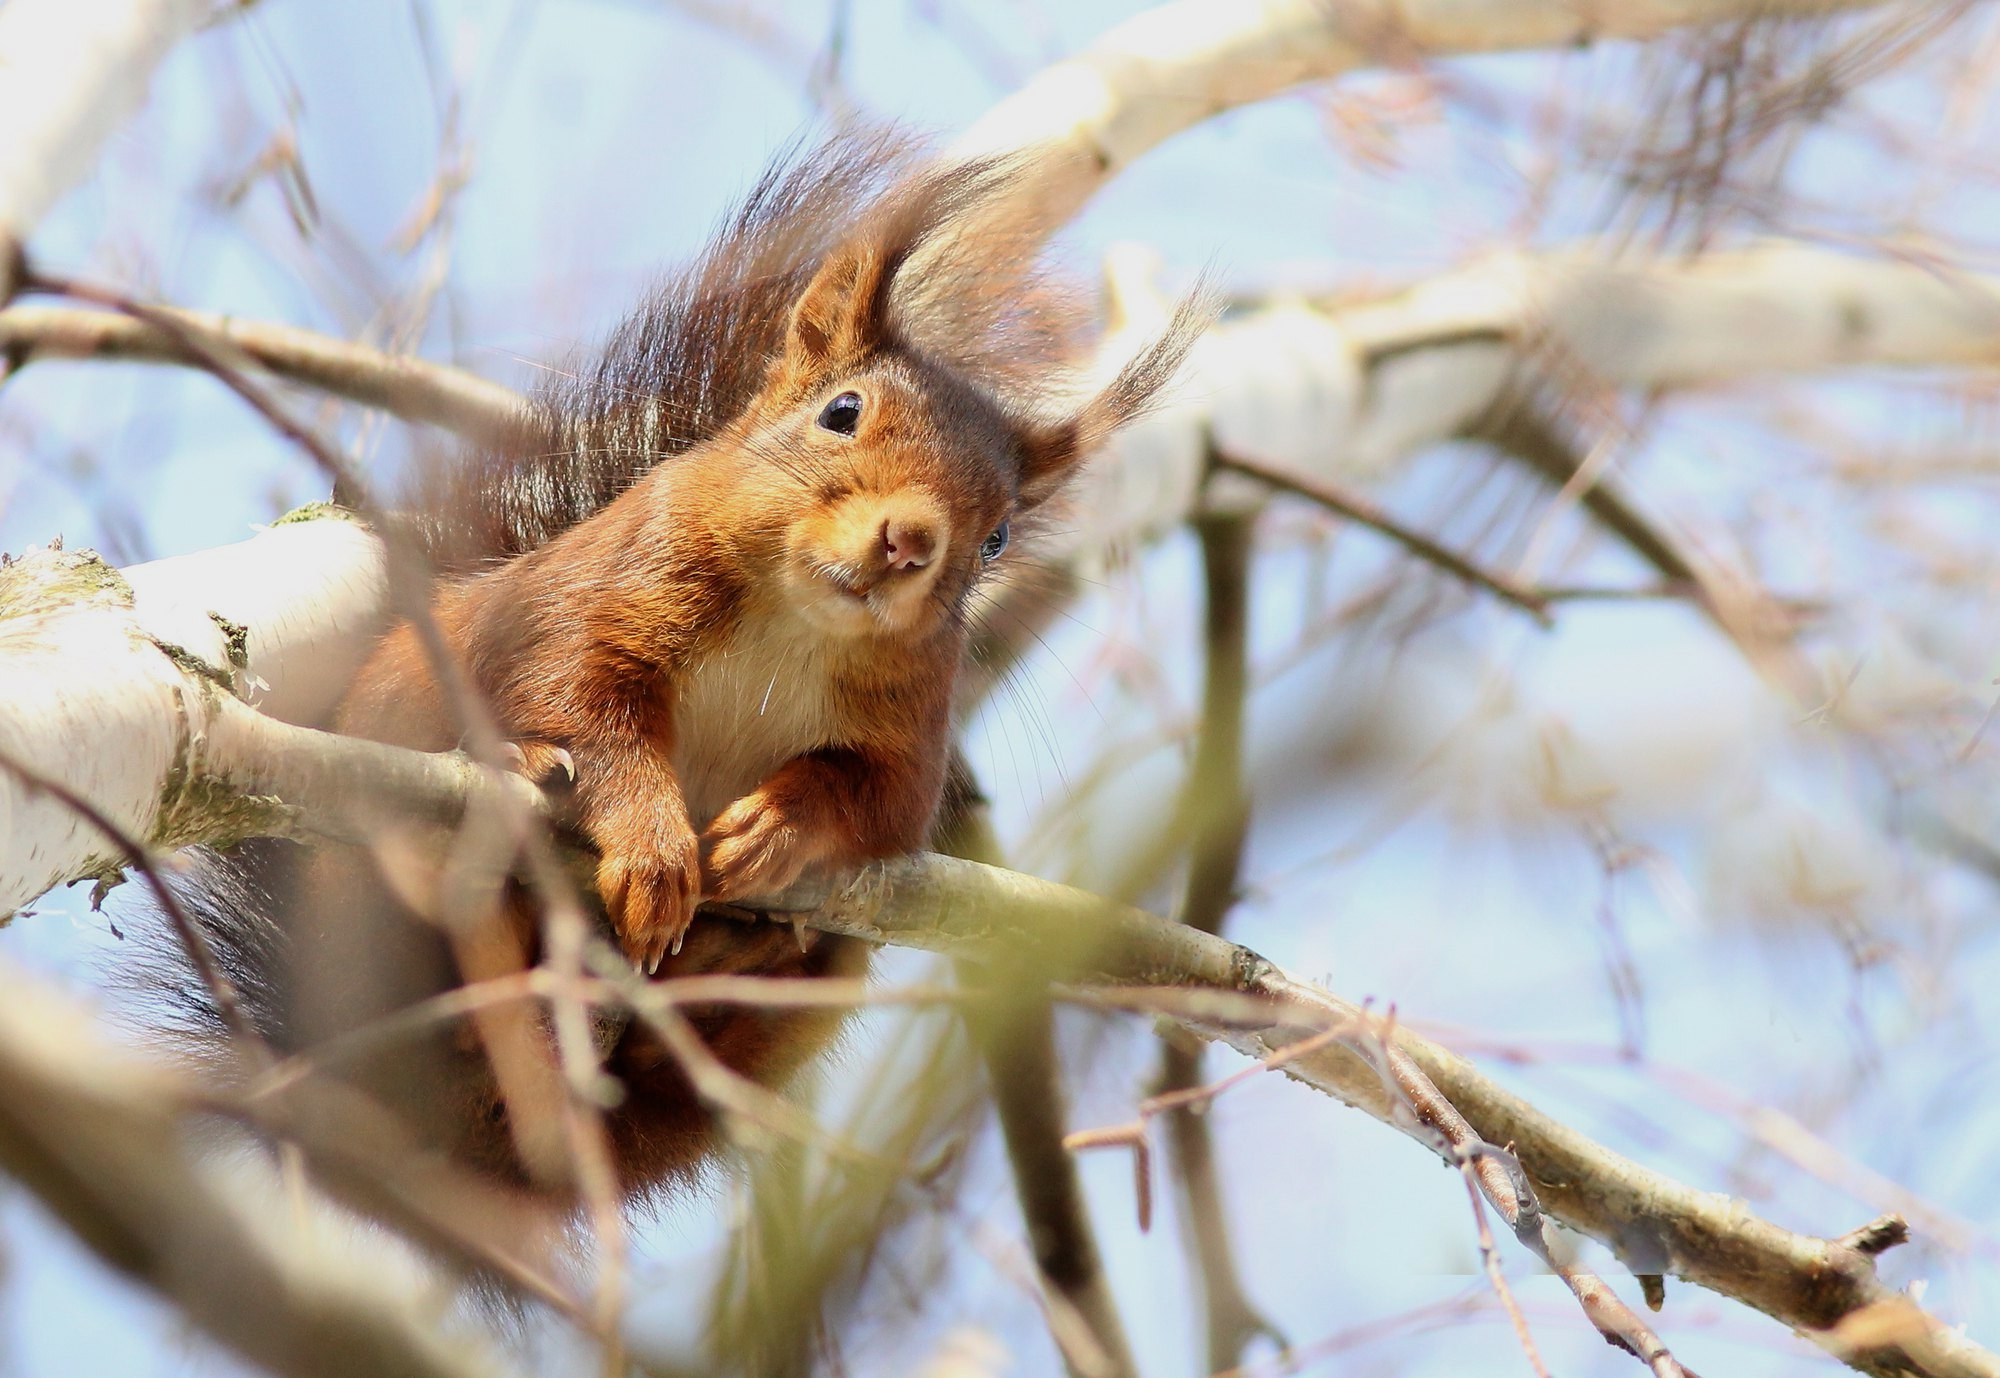 Red squirrel by Theo Louis